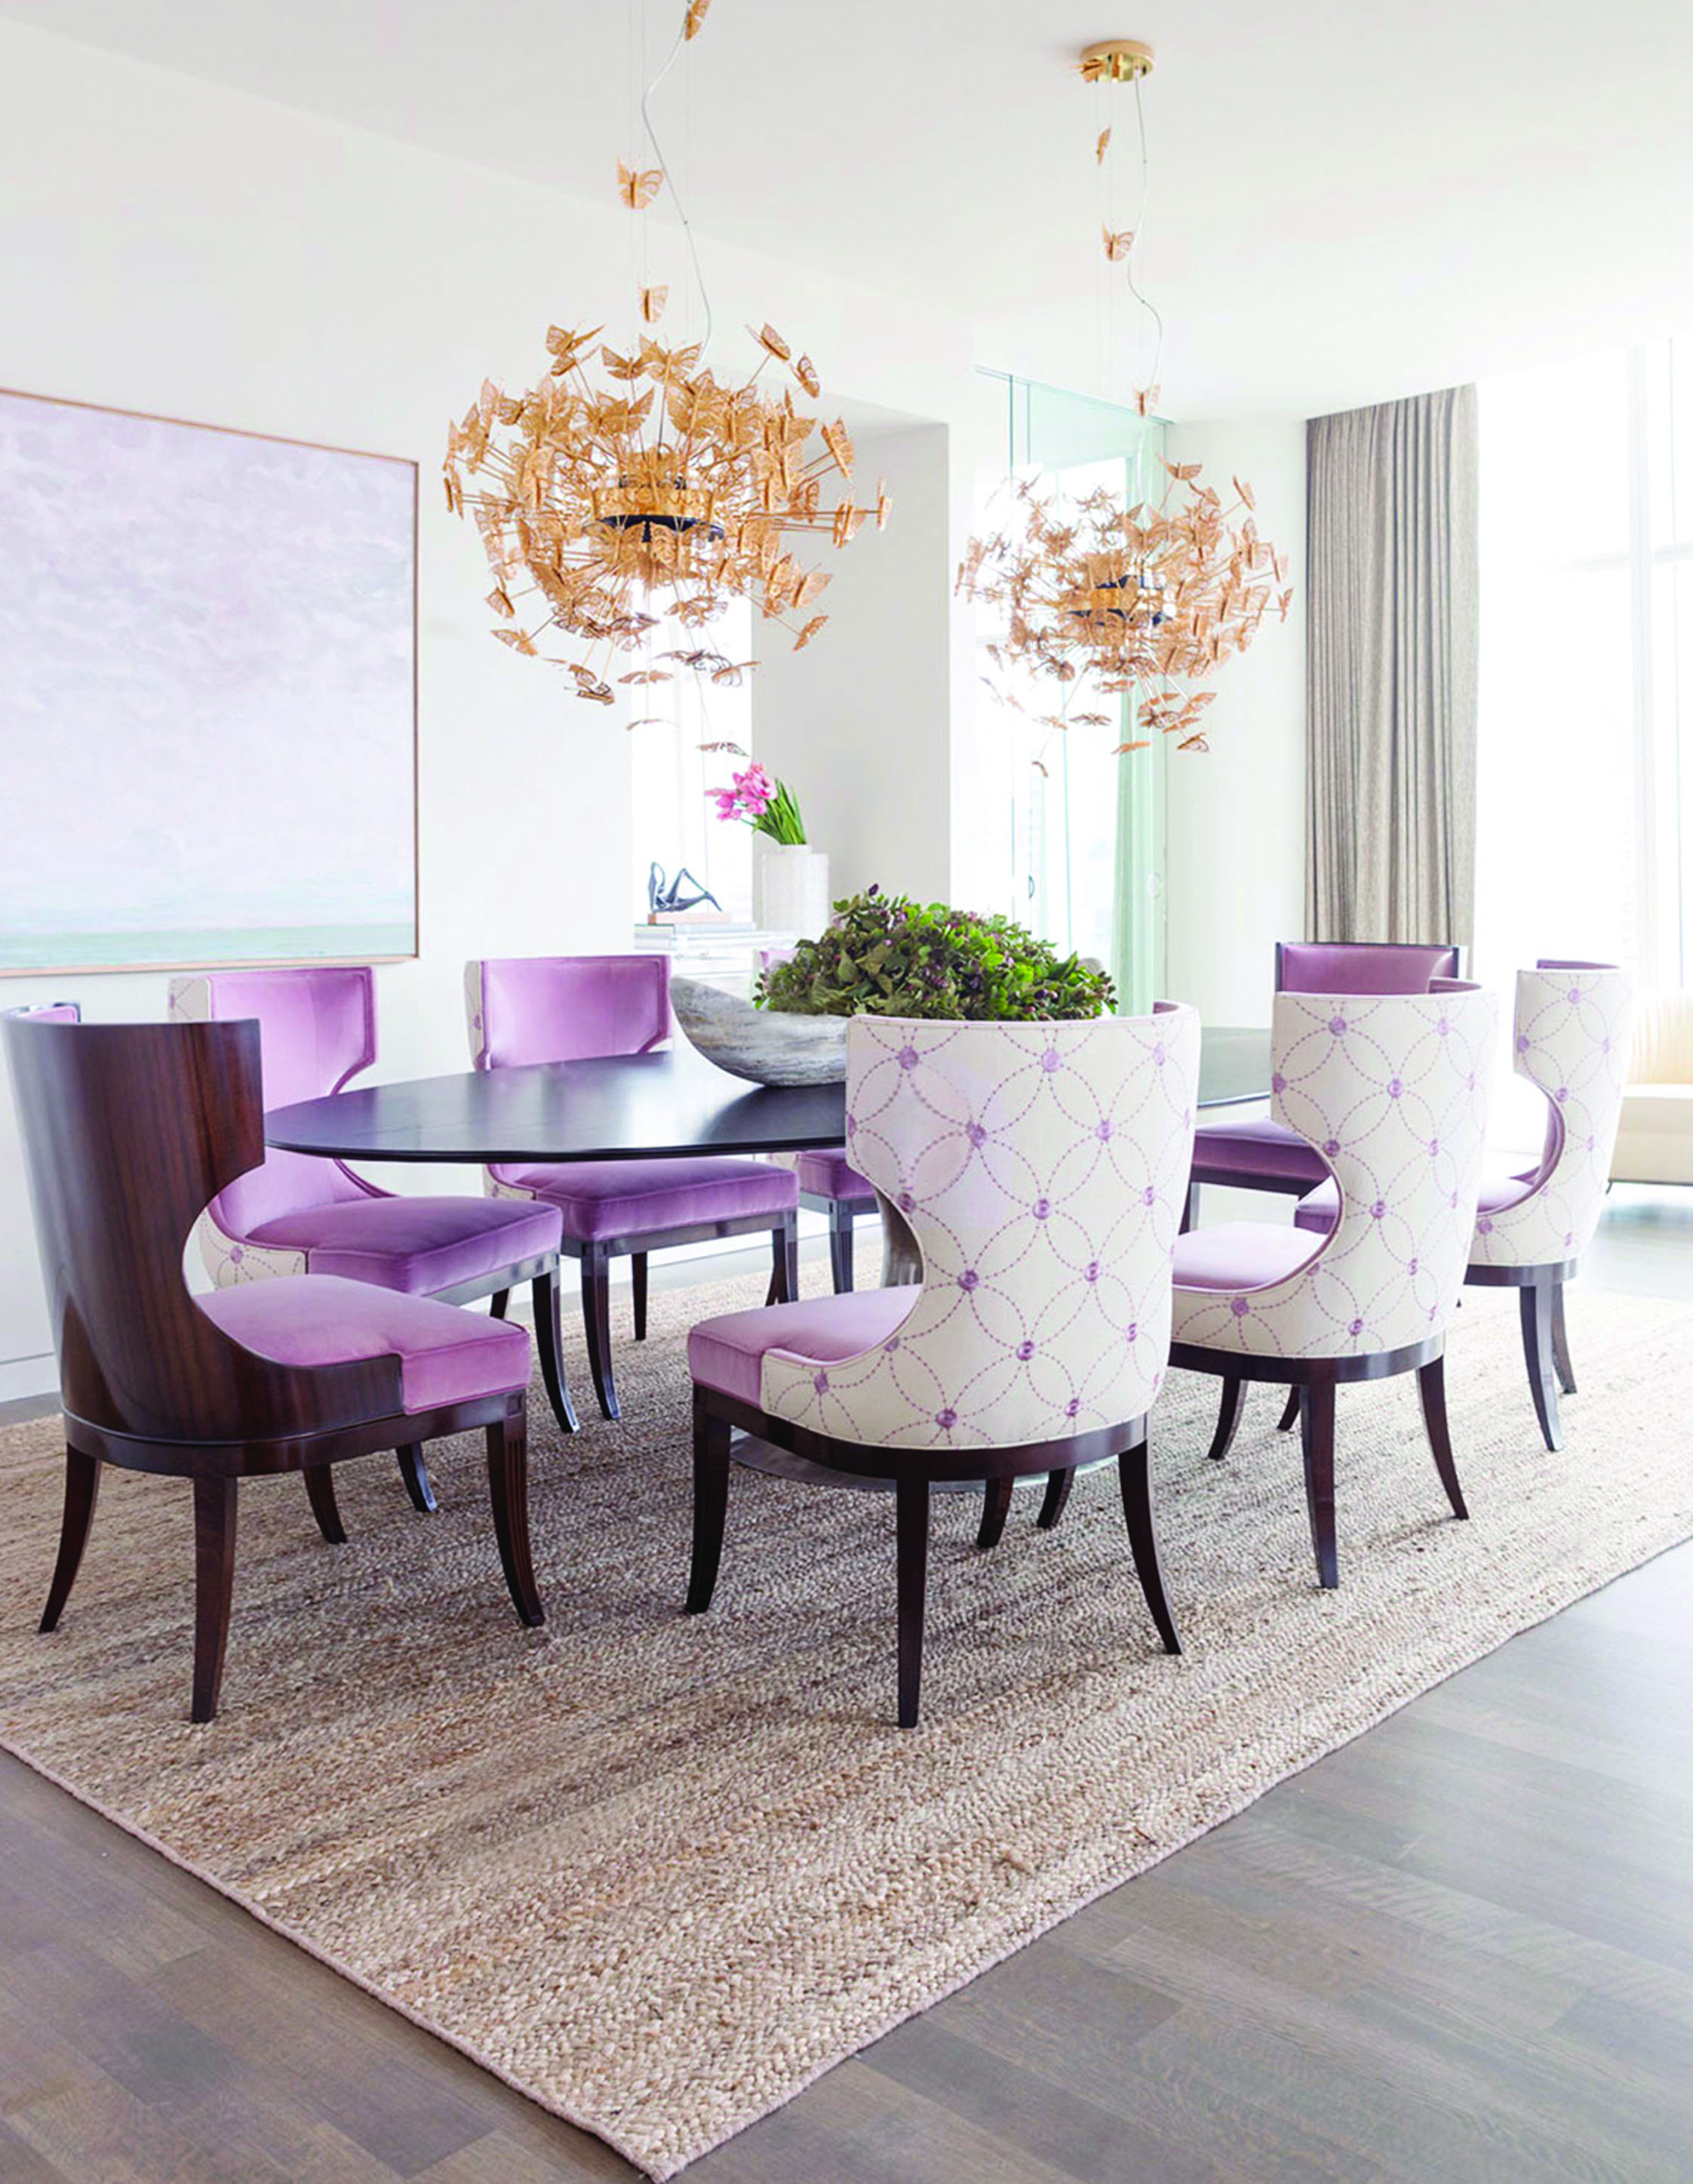 Luxury Design Brand Koket Launches Impressive Chandelier Collection luxury design Luxury Design Brand Koket Launches Impressive Chandelier Collection Luxury Design Brand Koket Launches the Most Impressive Chandelier Collection 2